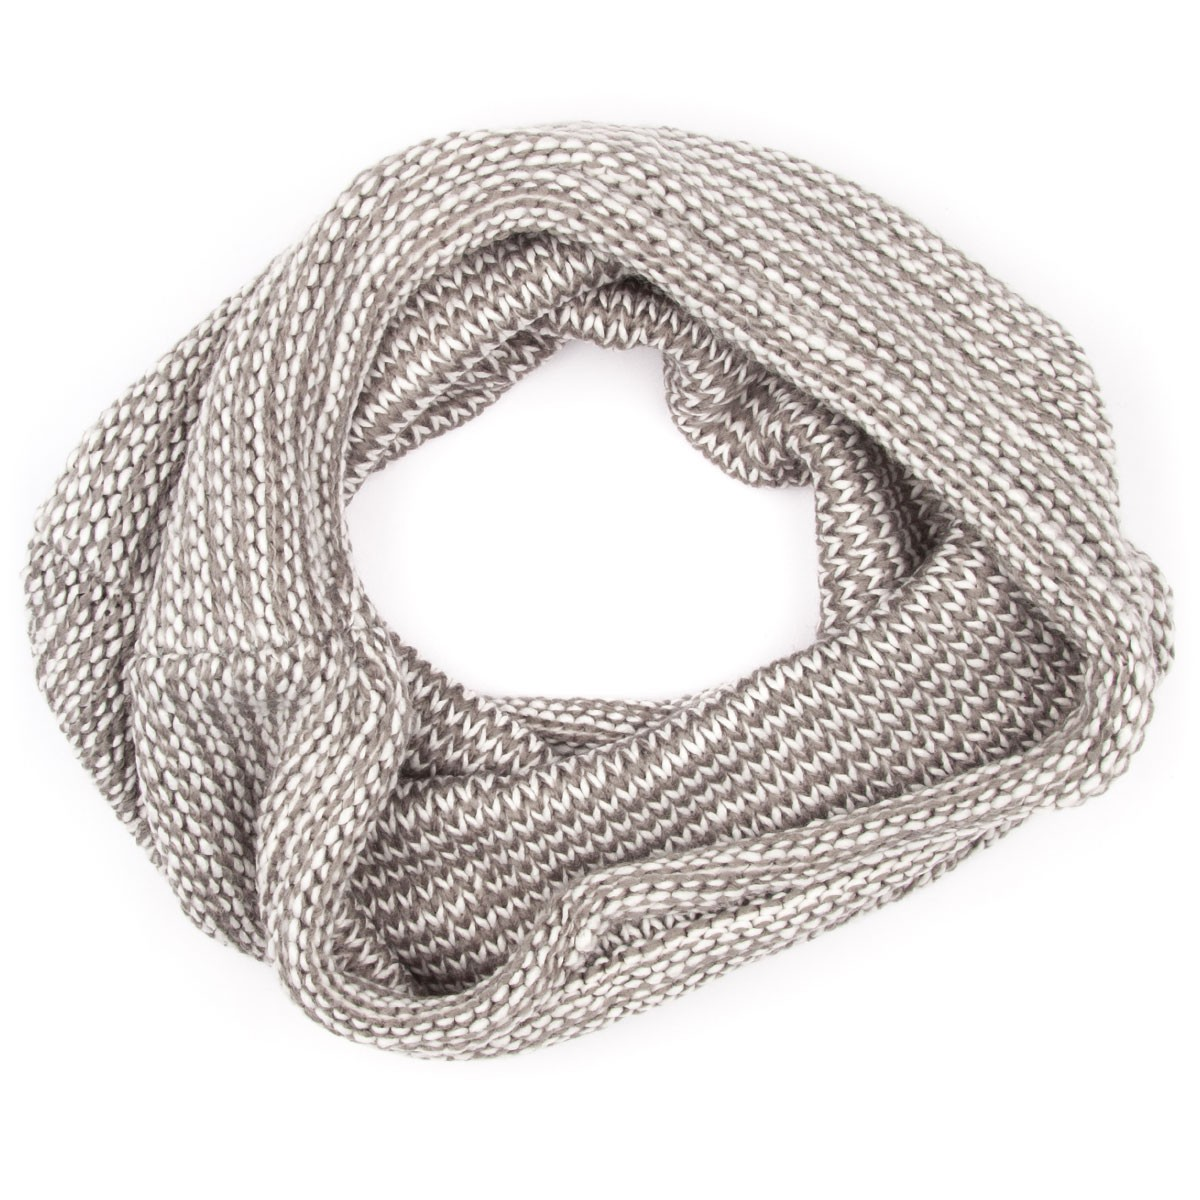 Vans Top Knot Womens Scarf - White Sand